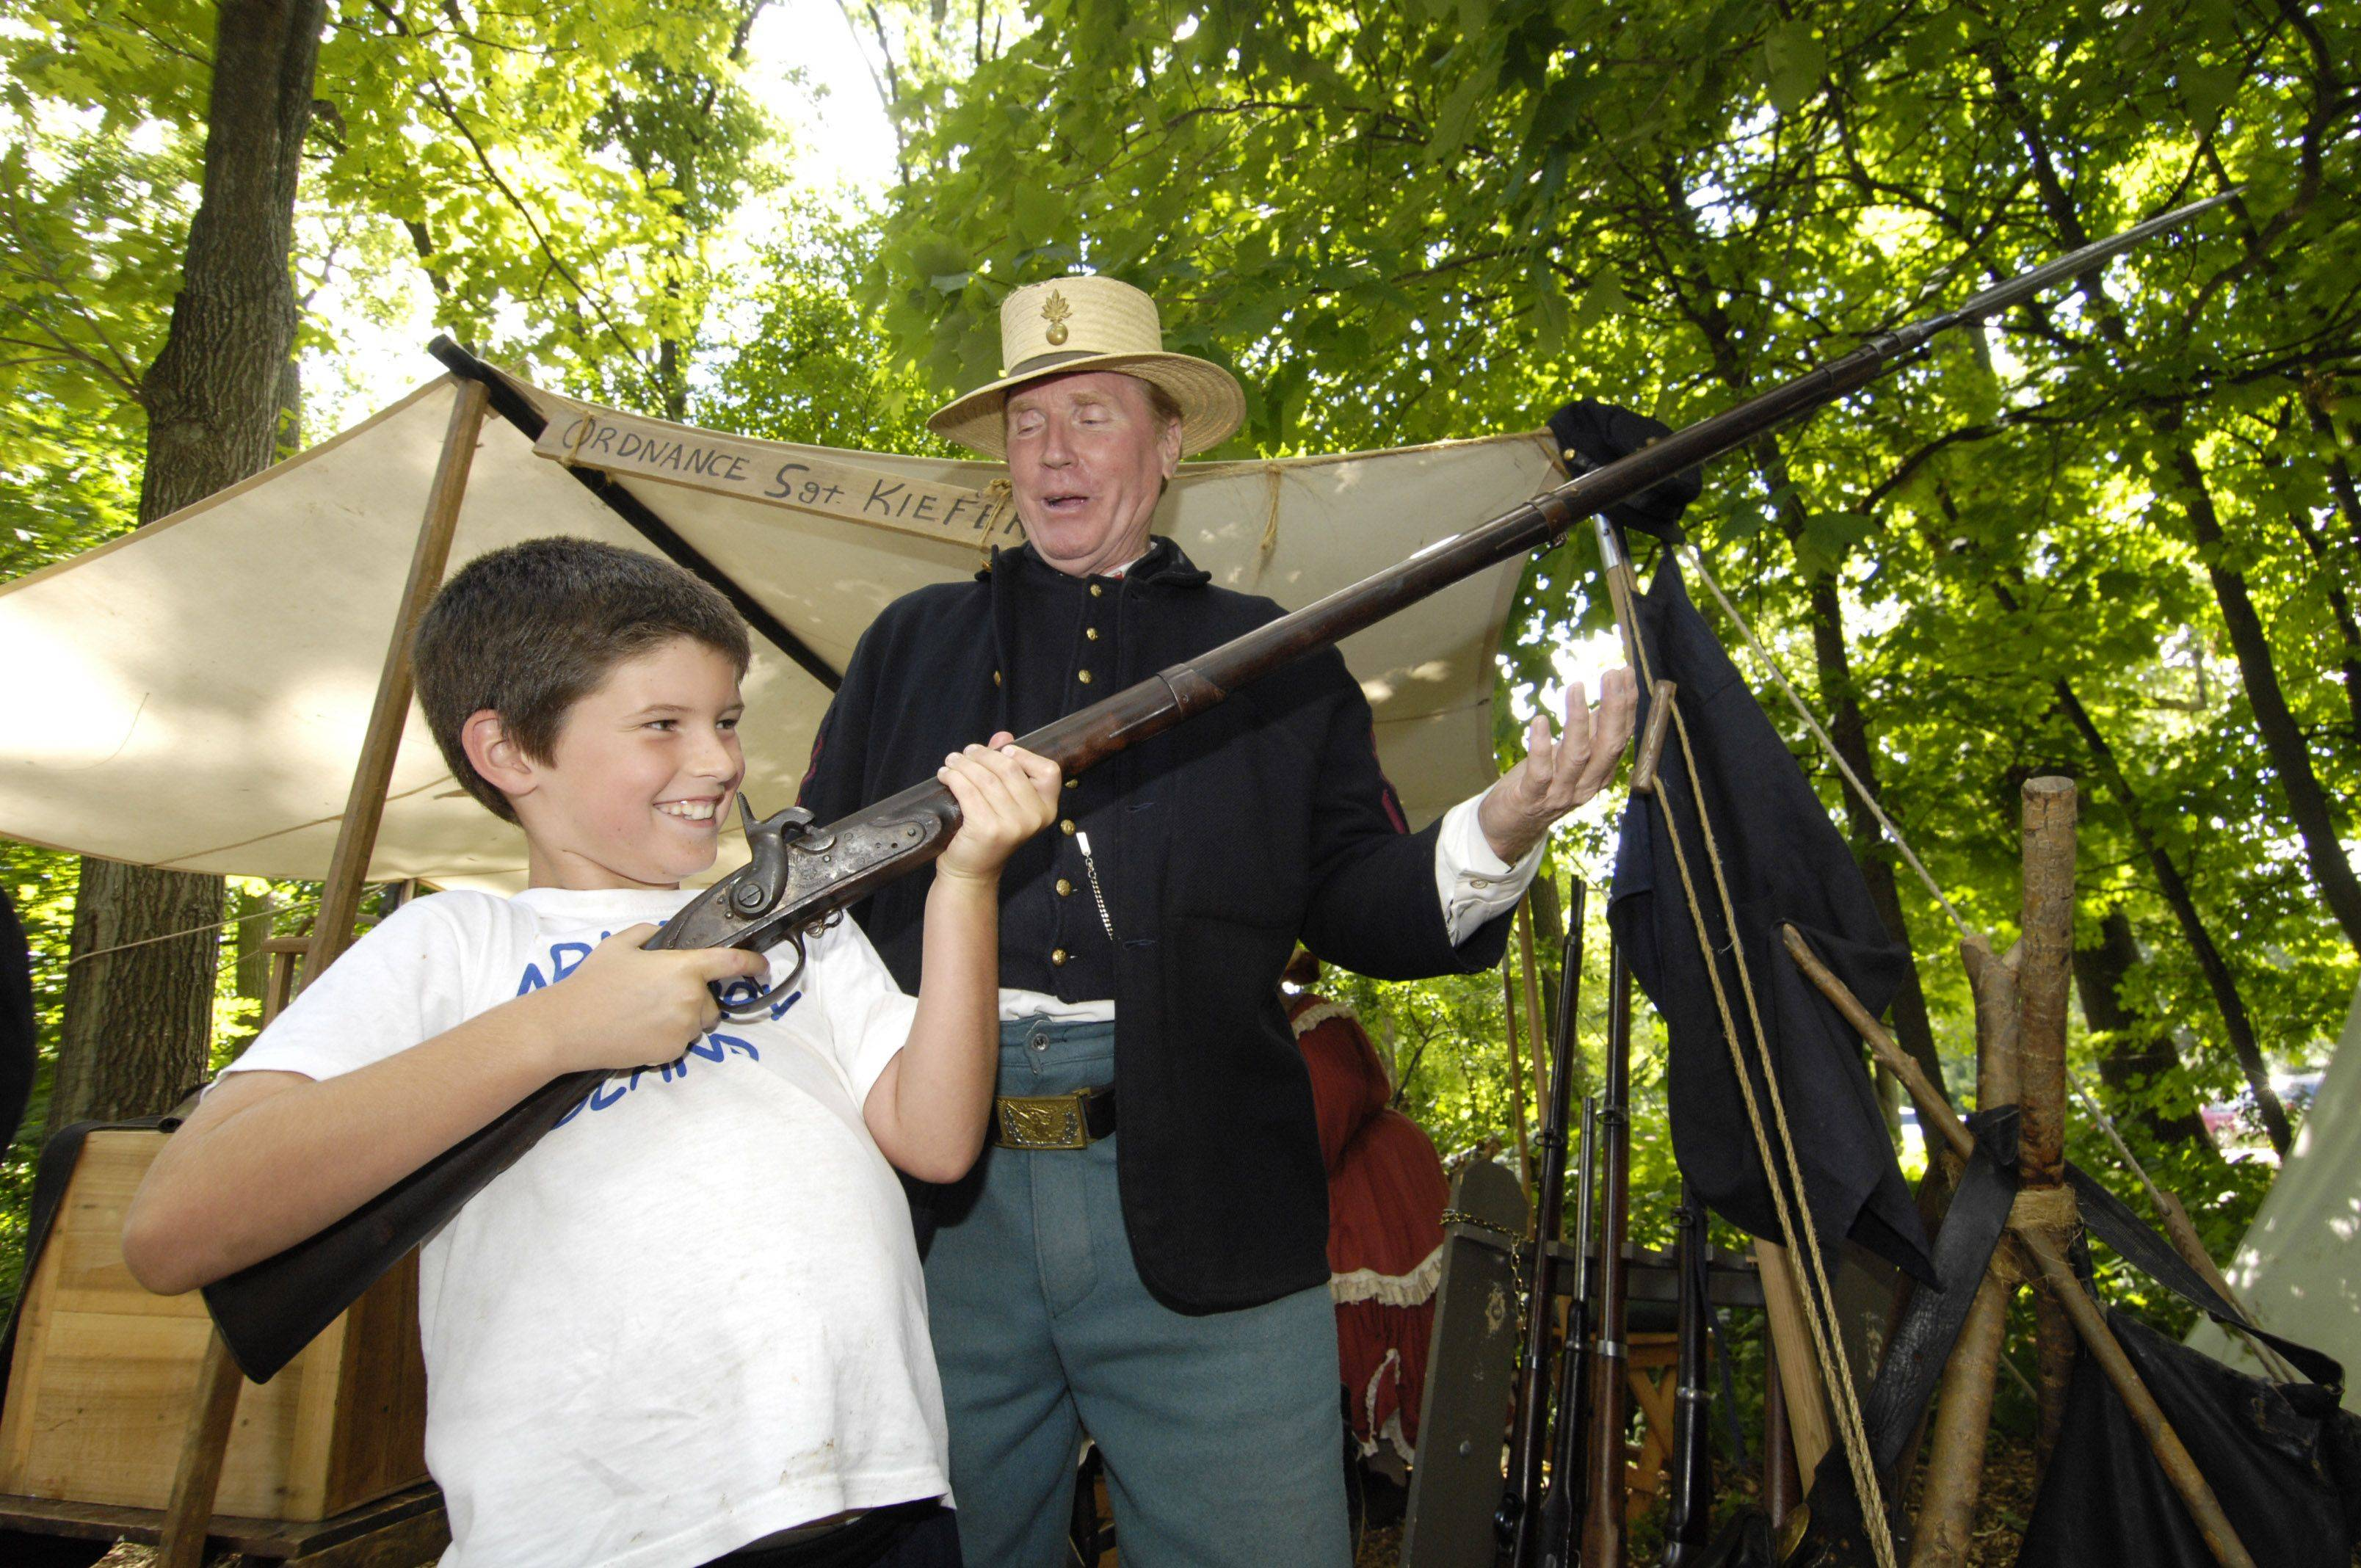 Jack Sullivan, 8, of Chicago holds a model 1795 Springfield rifle as he talks with Civil War re-enactor Pete Kiefert of Coal City. A Civil War Encampment was set up at the Graue Mill and Museum in Oak Brook this weekend, on the 150th anniversary of the war.